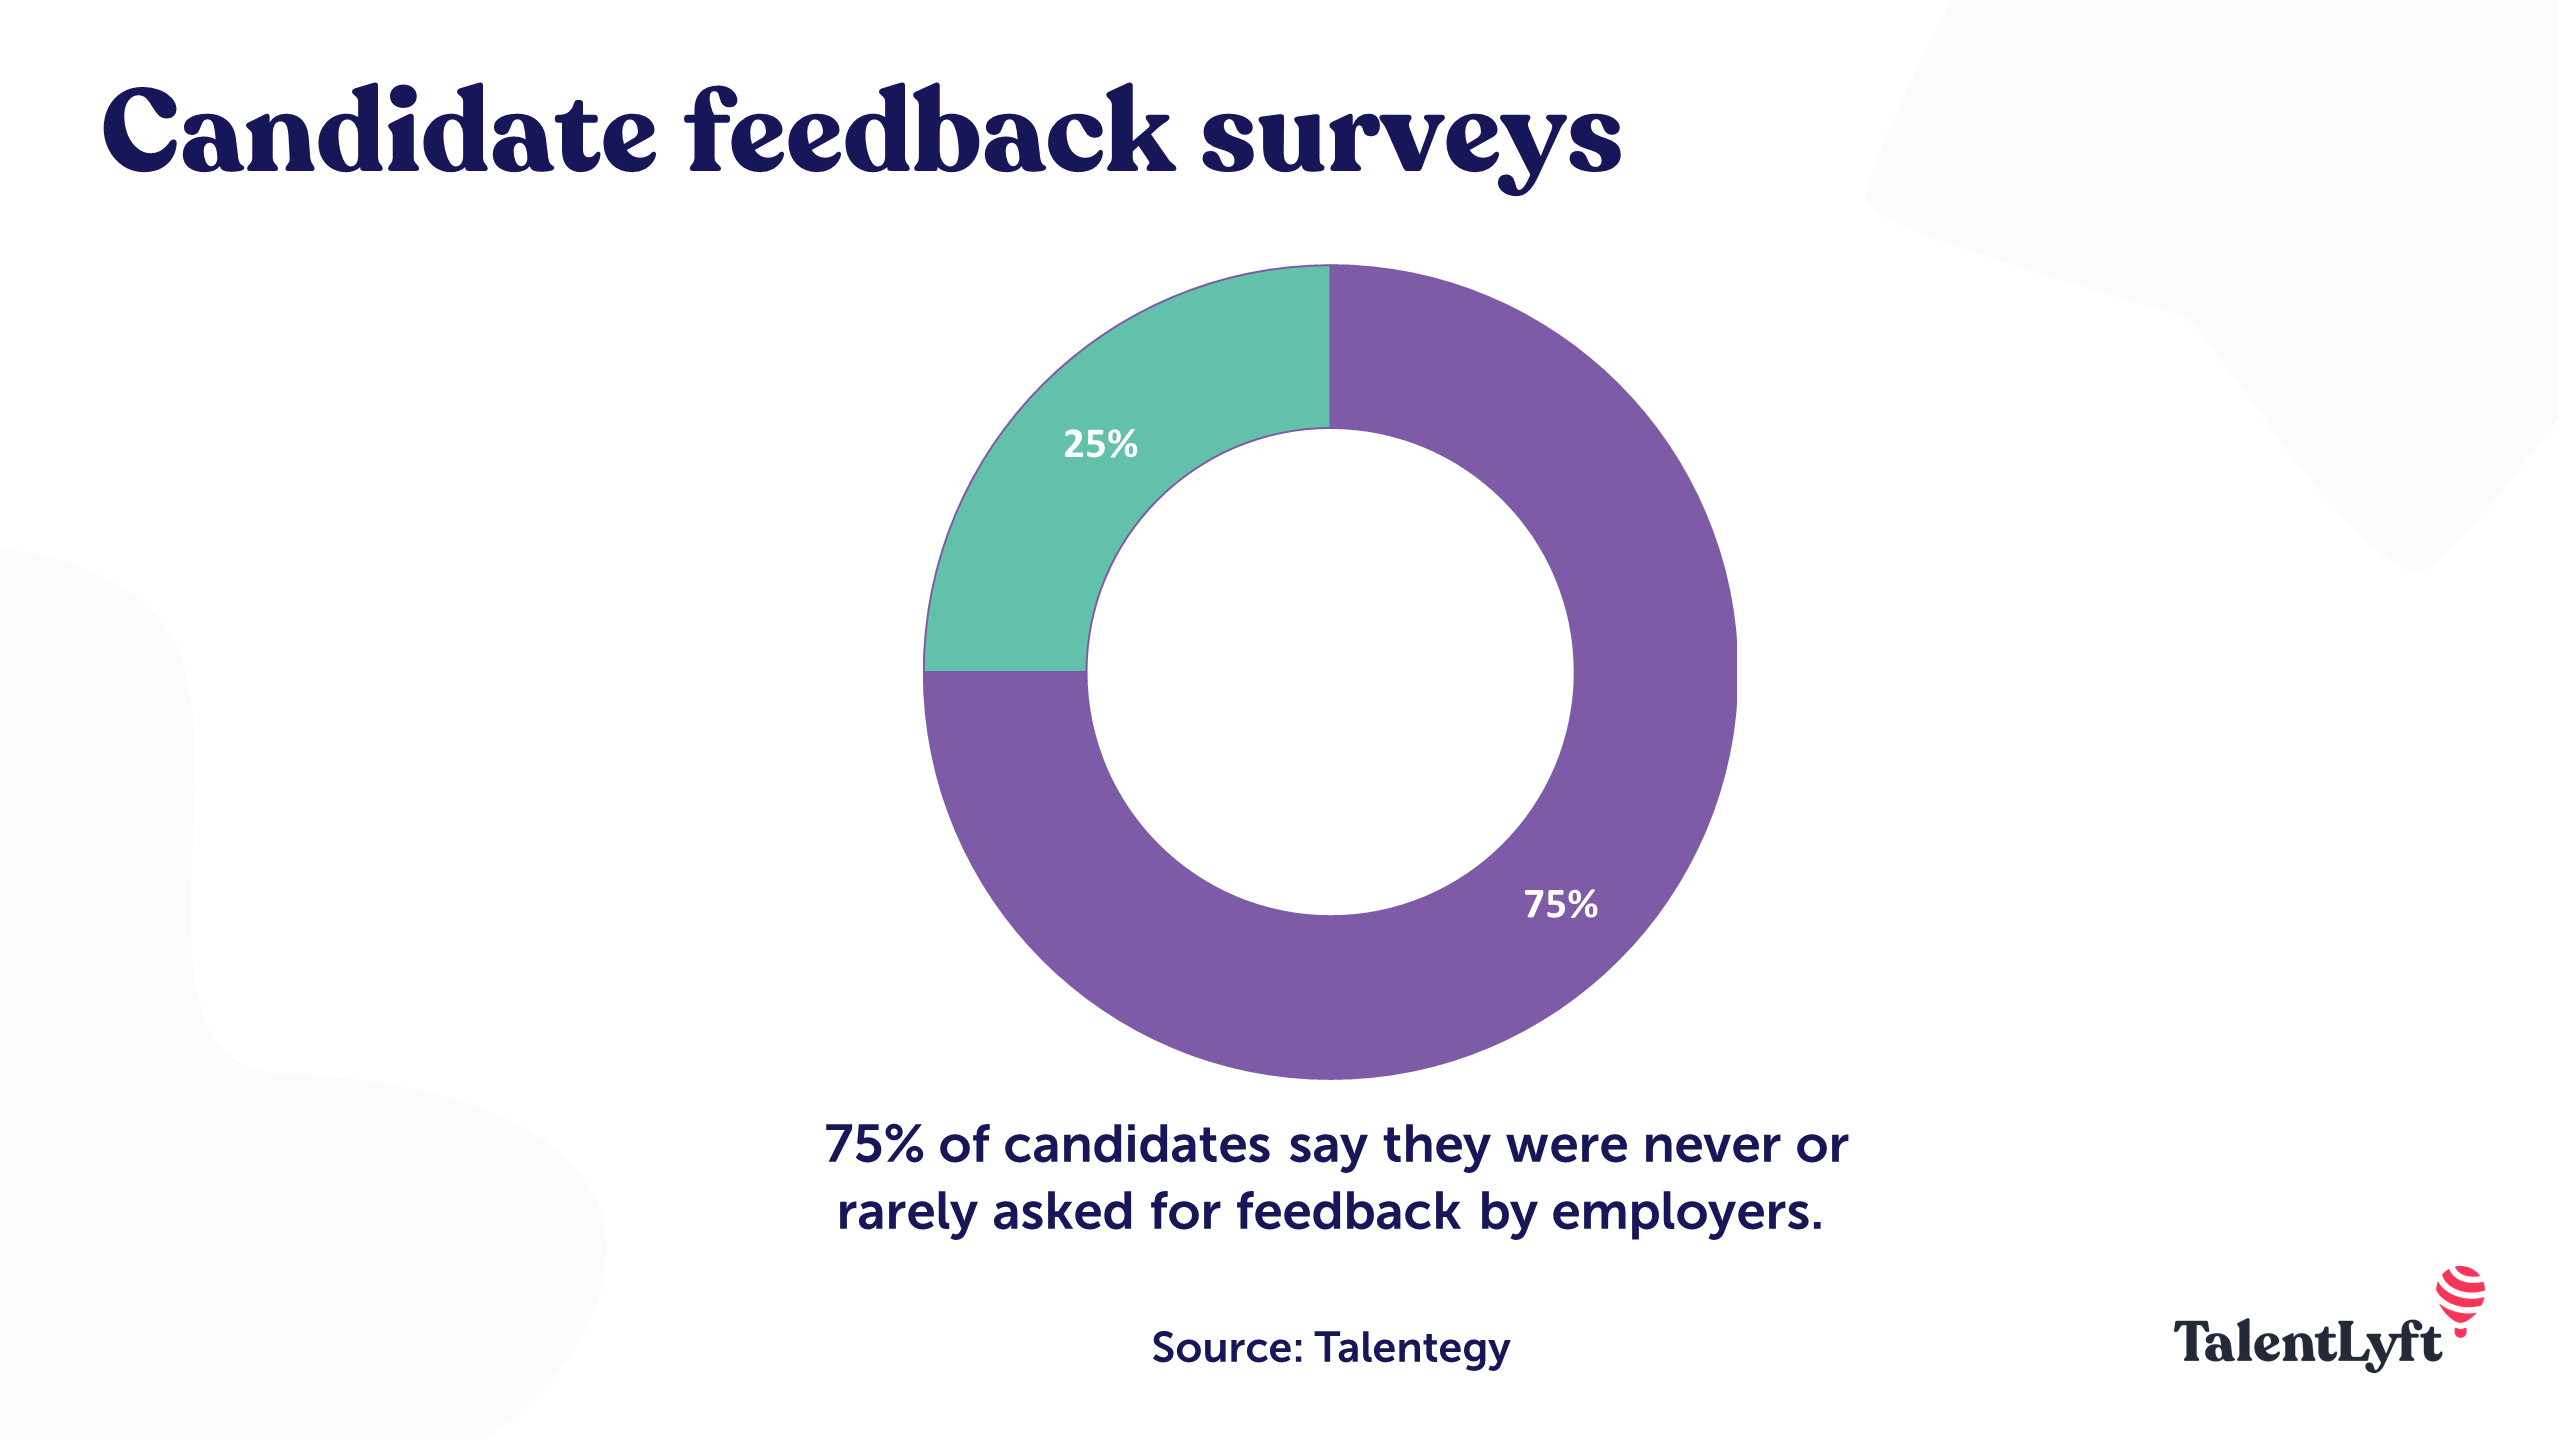 Candidate feedback survey